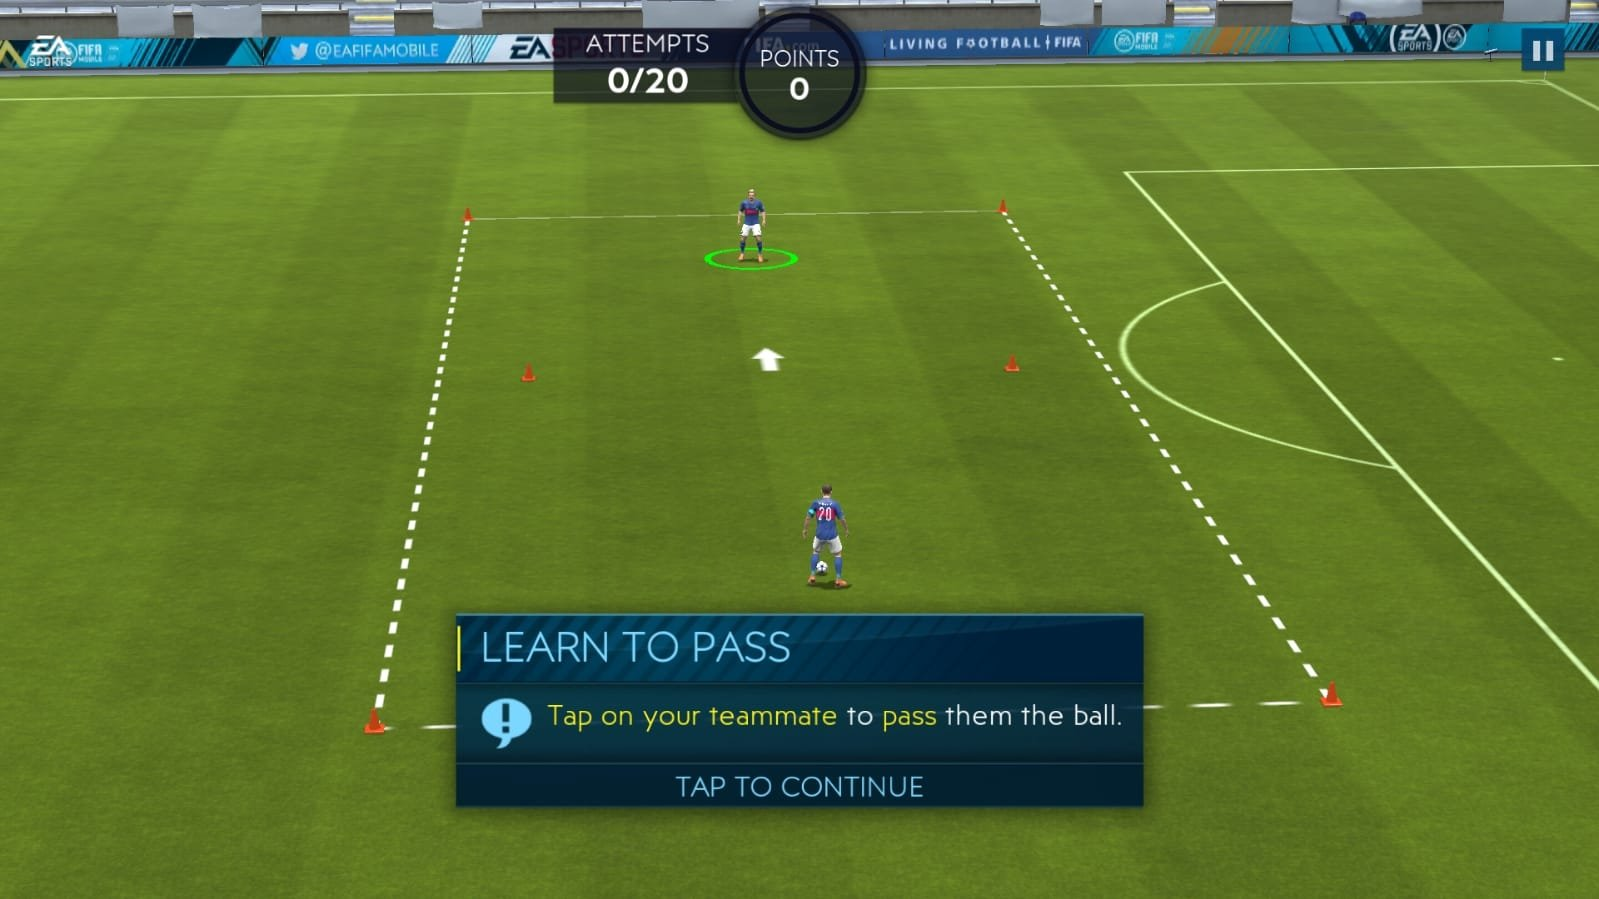 Fifa mobile 19 download apk ios | Download FIFA 19 Mod Apk +